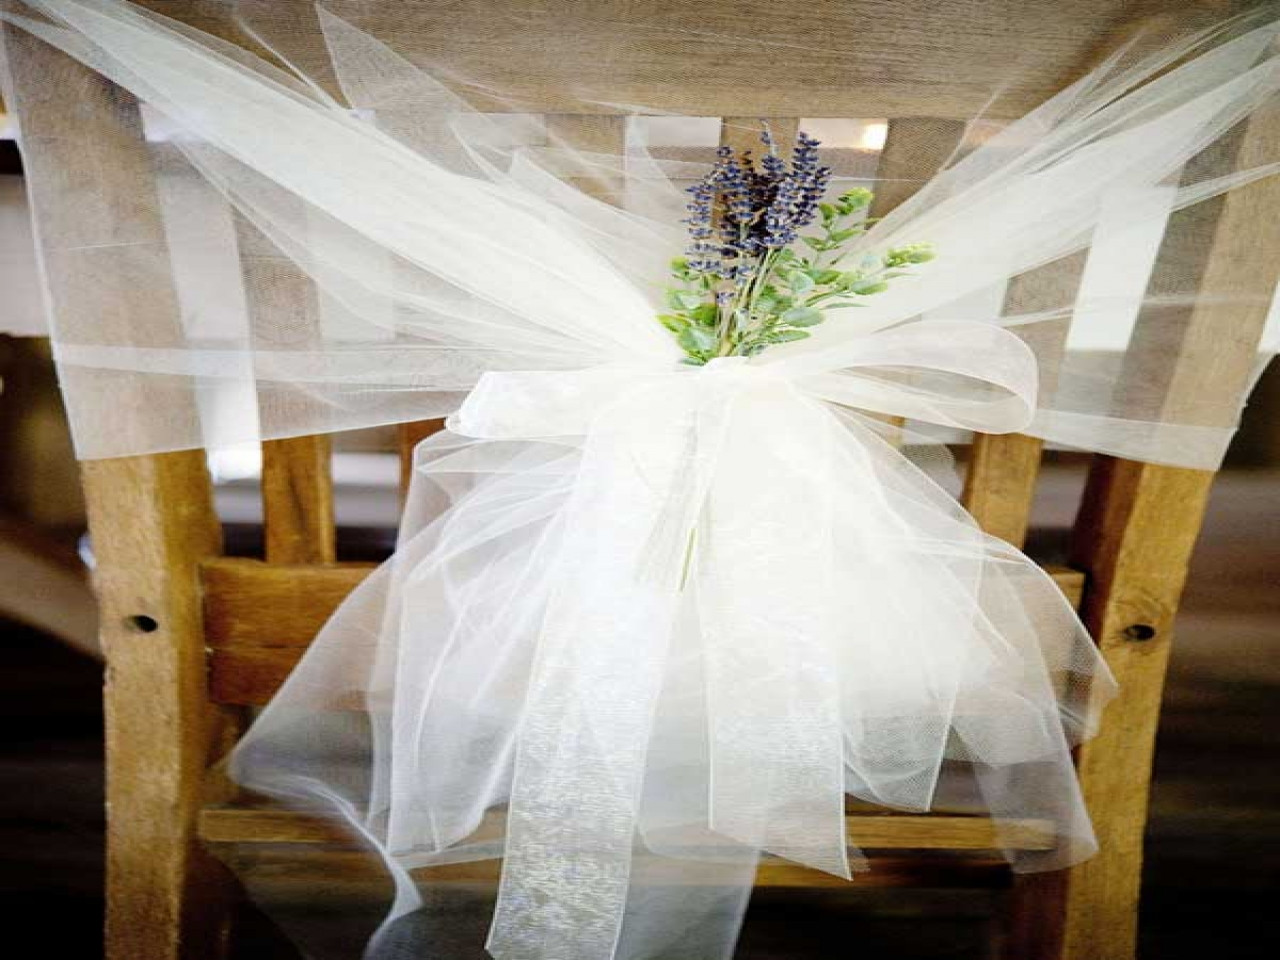 Best ideas about DIY Wedding Chair Covers . Save or Pin Fabric for furniture cover diy wedding chair covers Now.